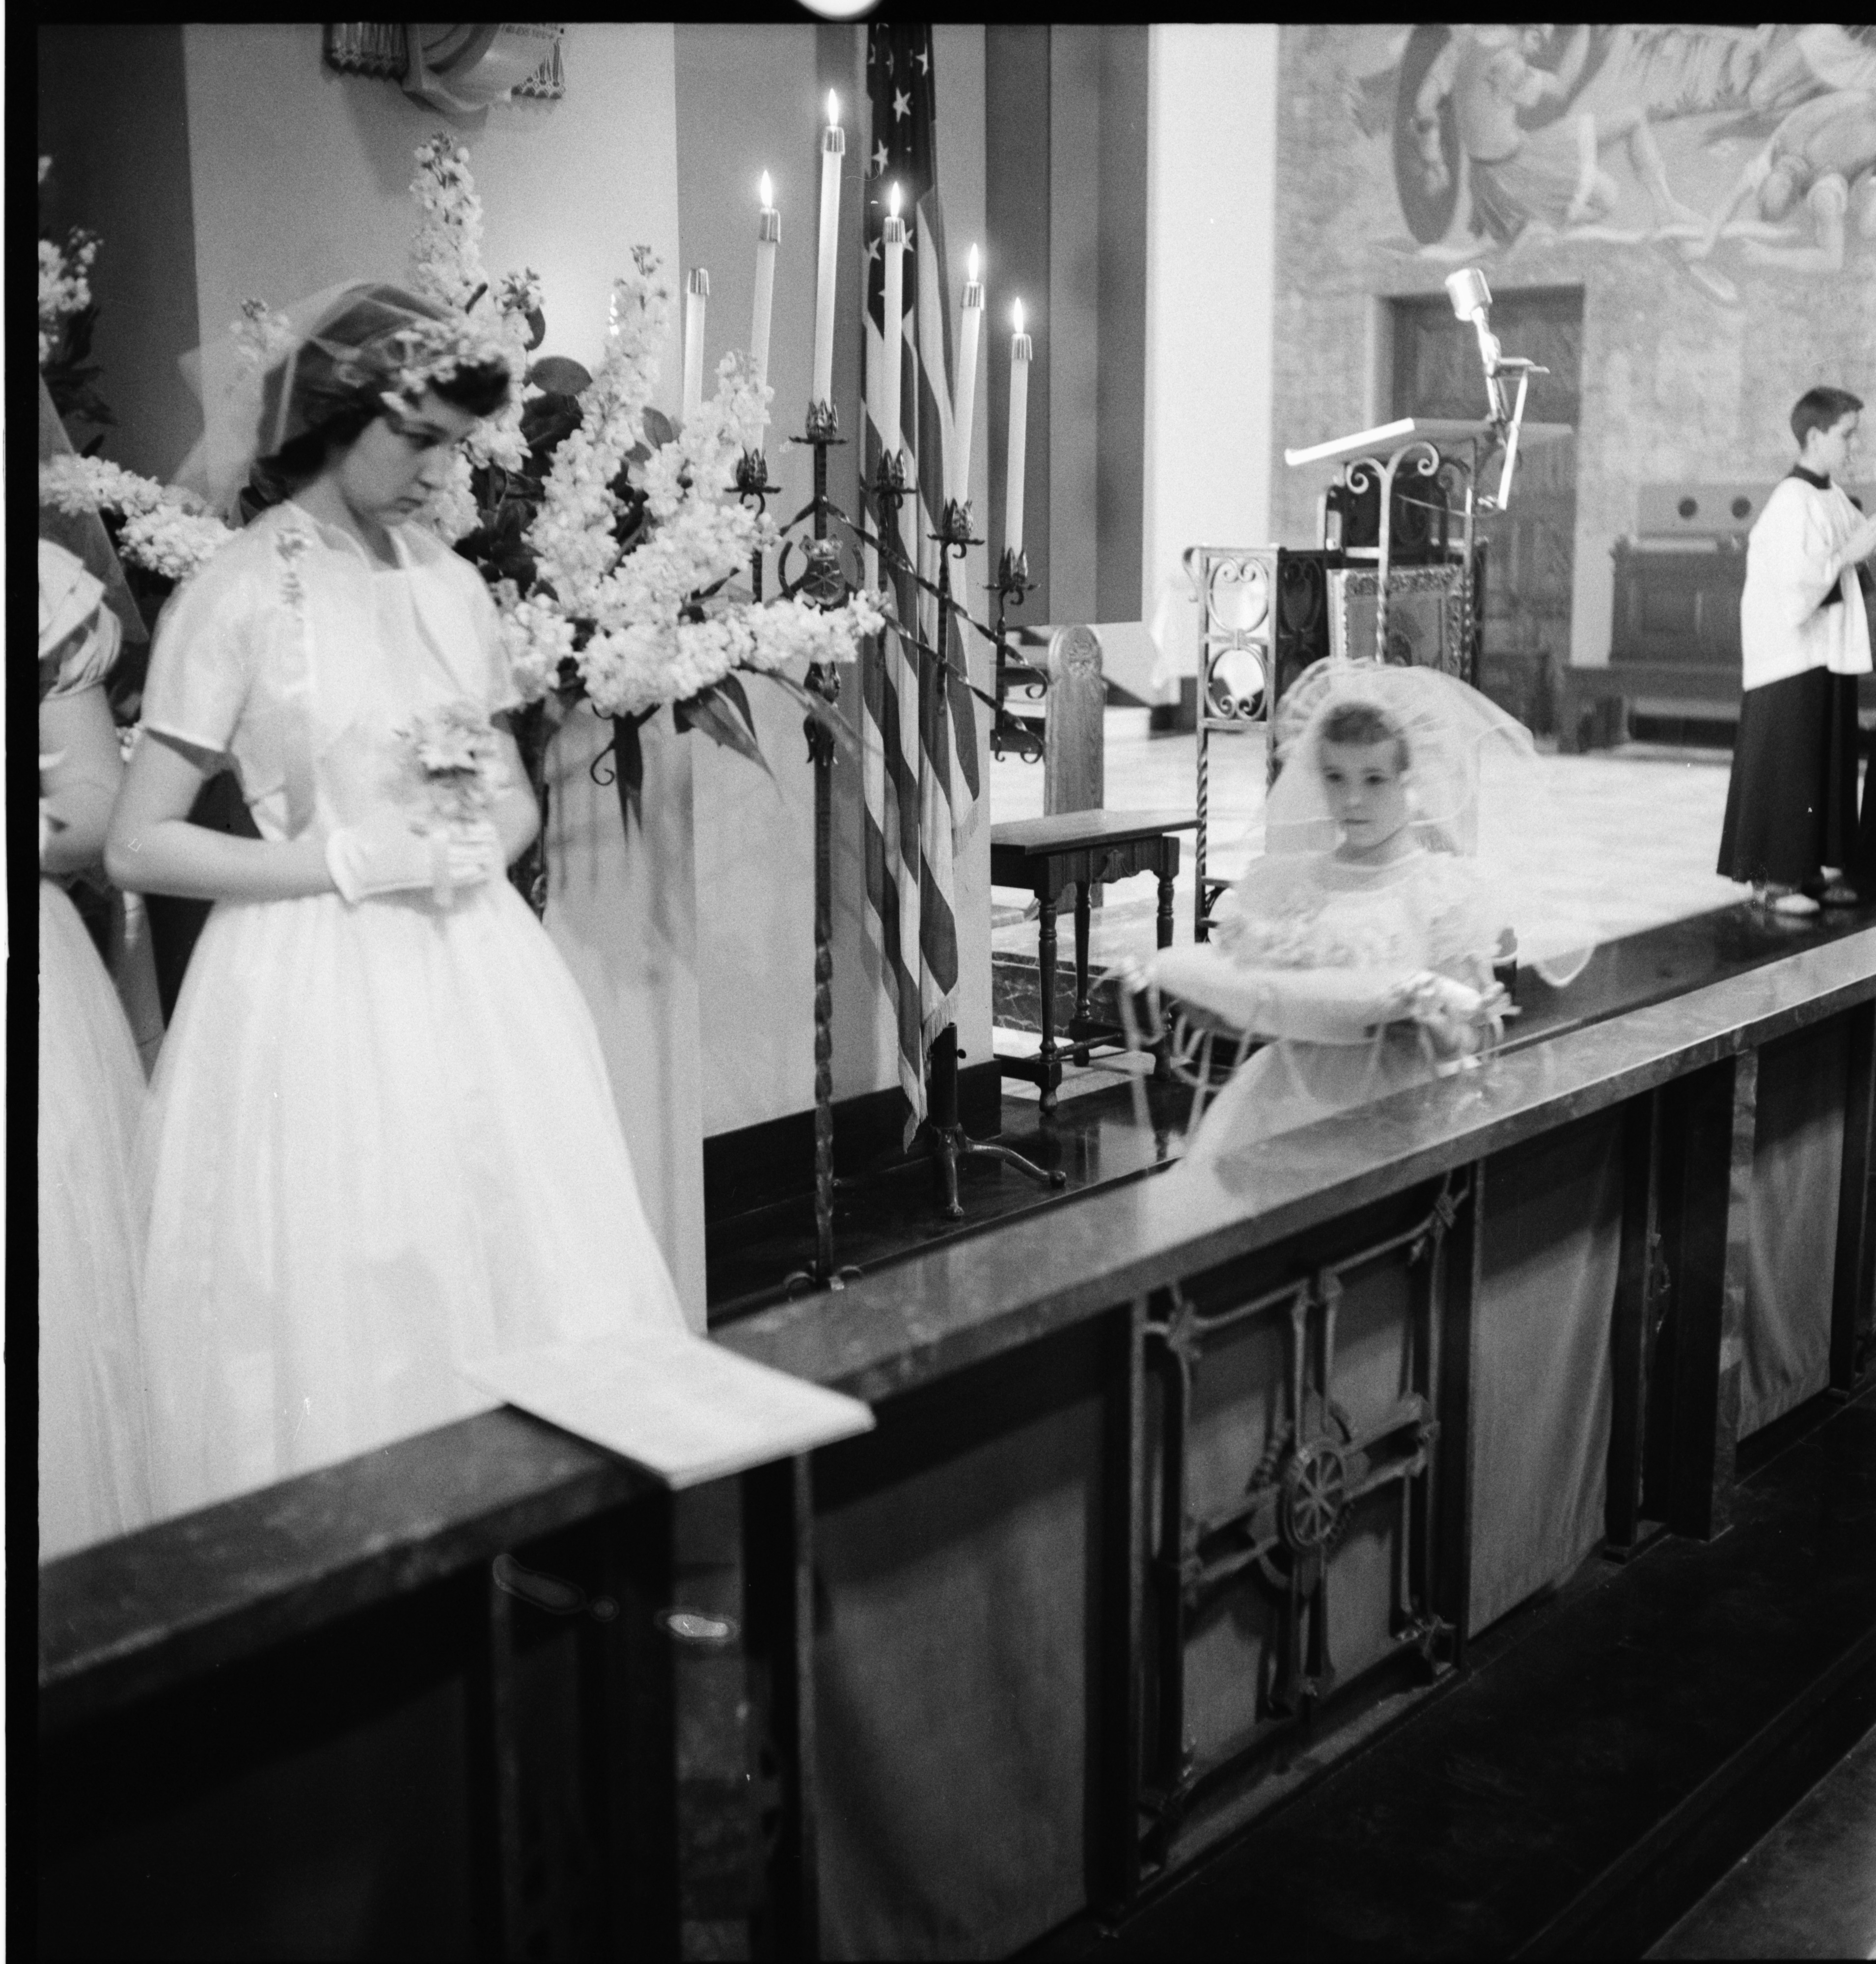 The Crown Of Flowers Is Carried In During The May Crowning Ceremony at St. John's Catholic Church In Ypsilanti, May 1957 image